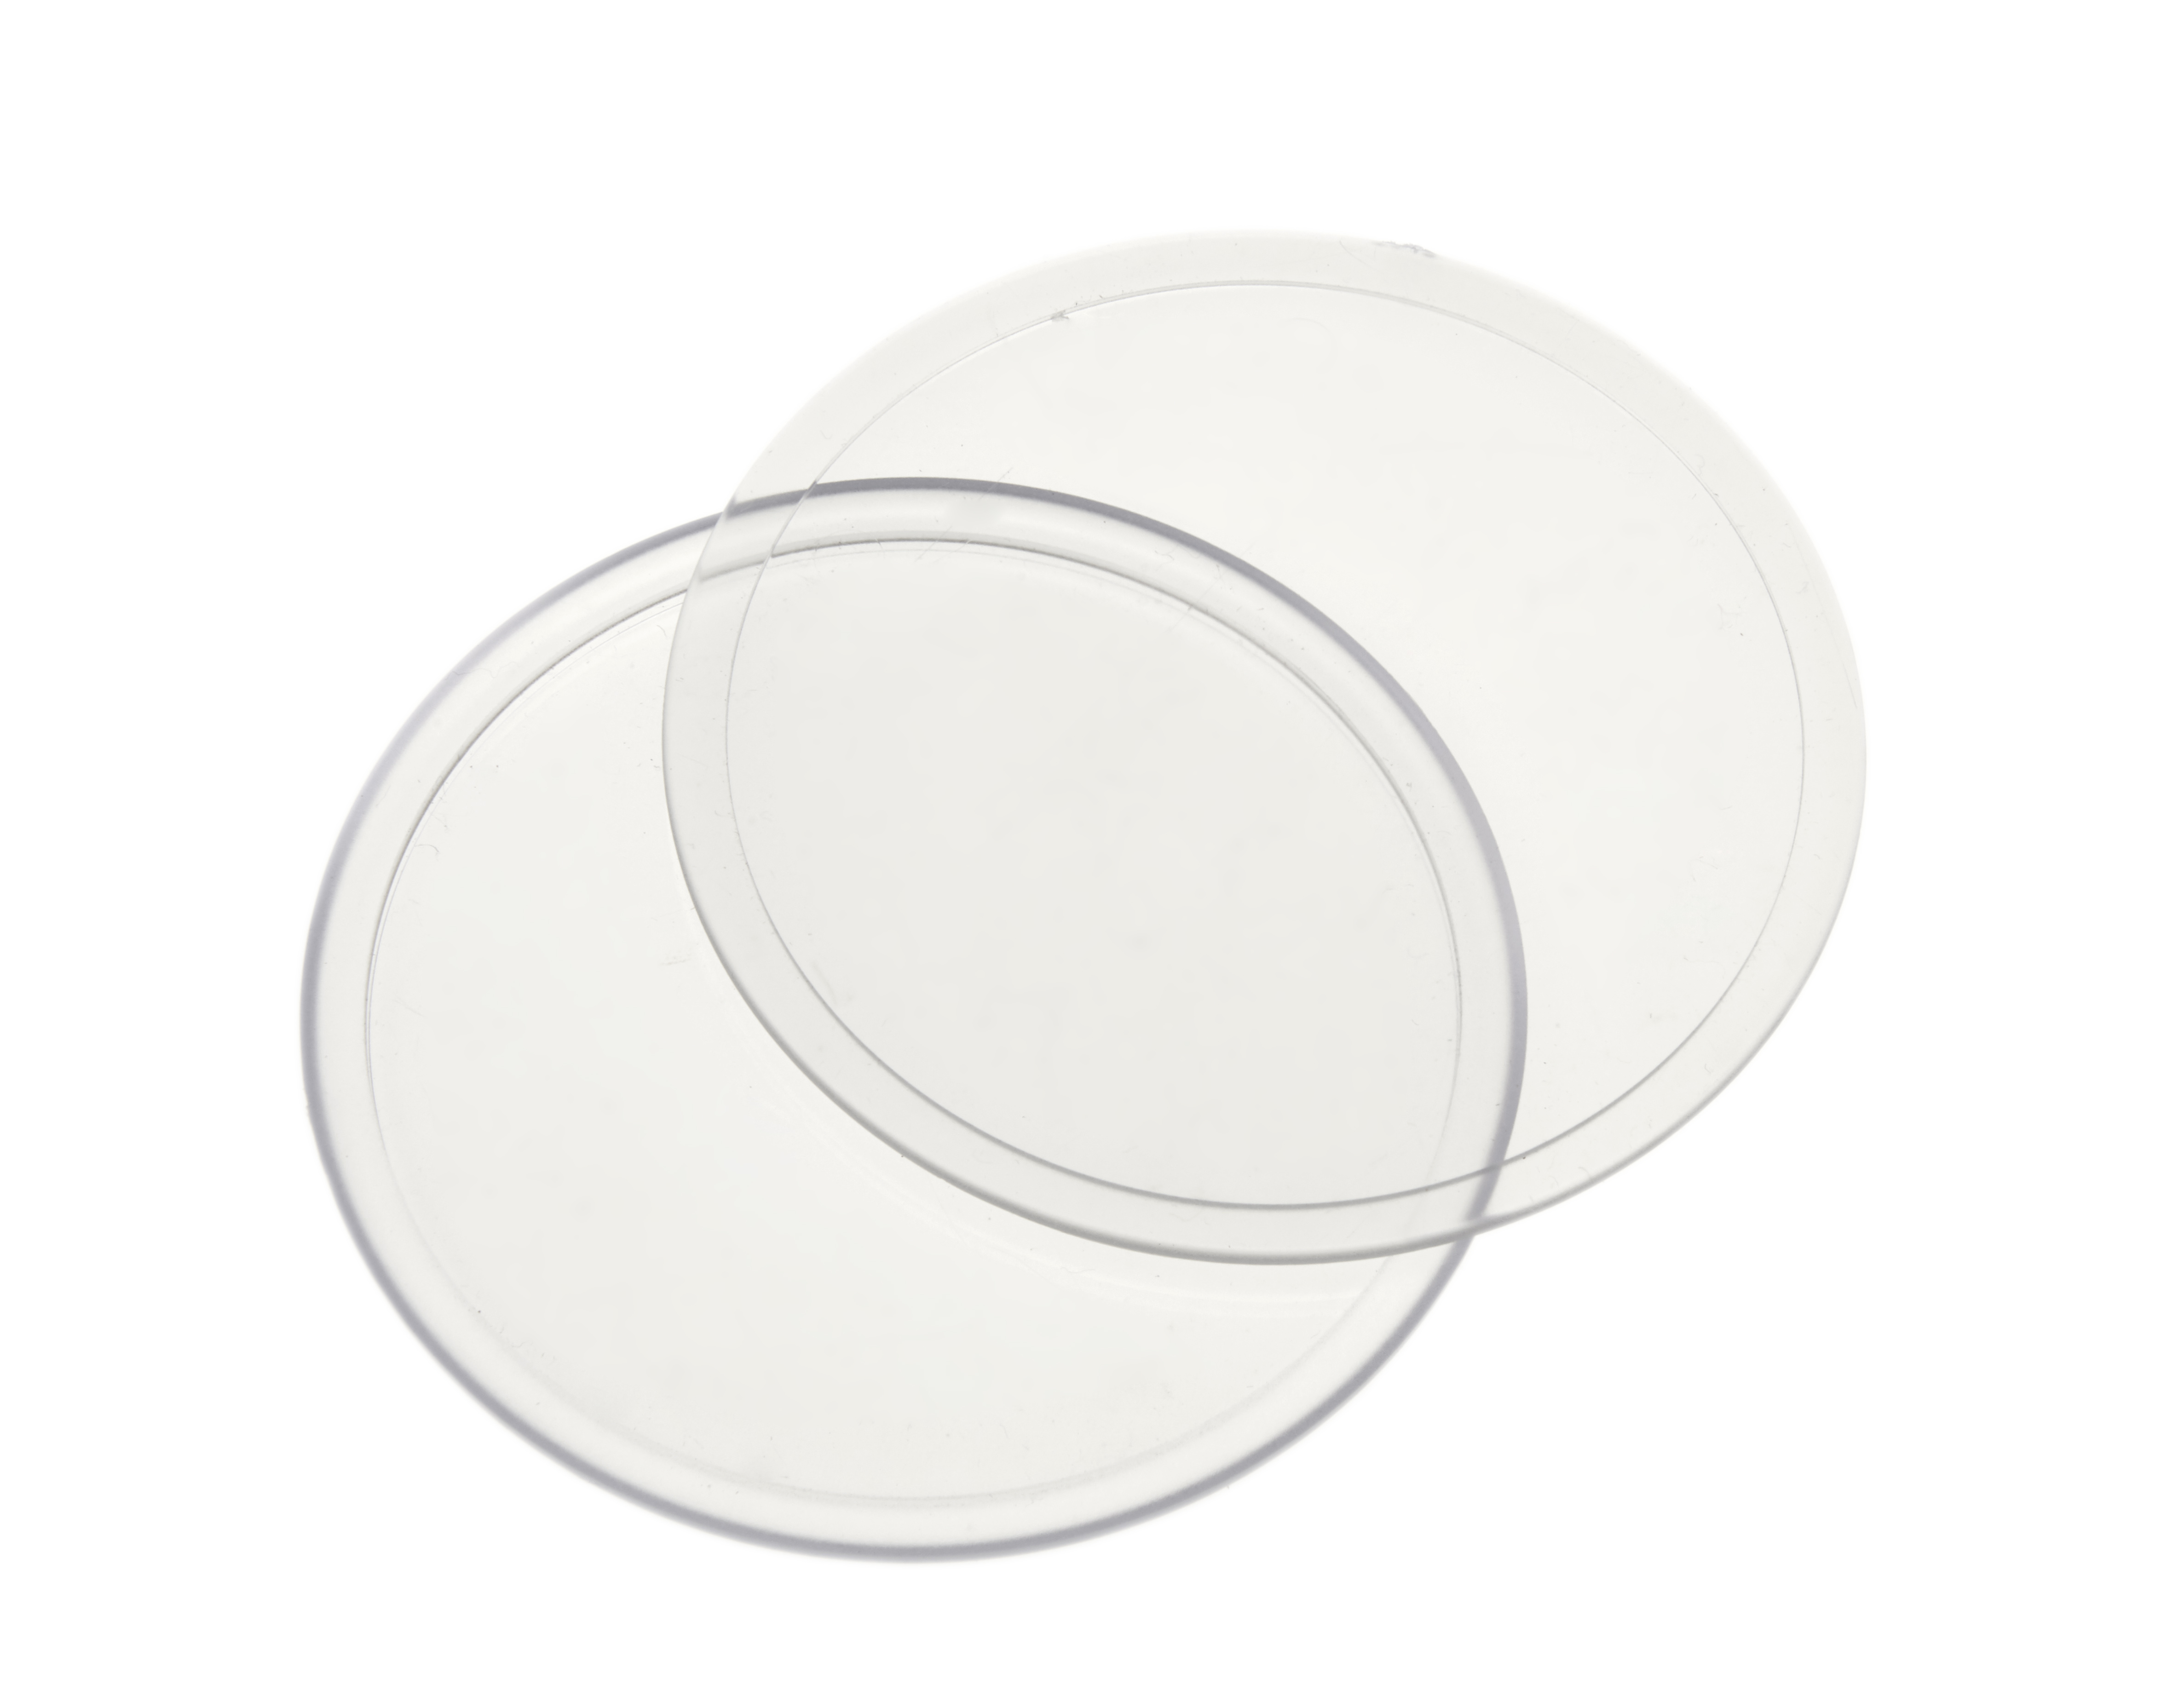 90mm Diameter (Insert) Clear Acrylic Coaster